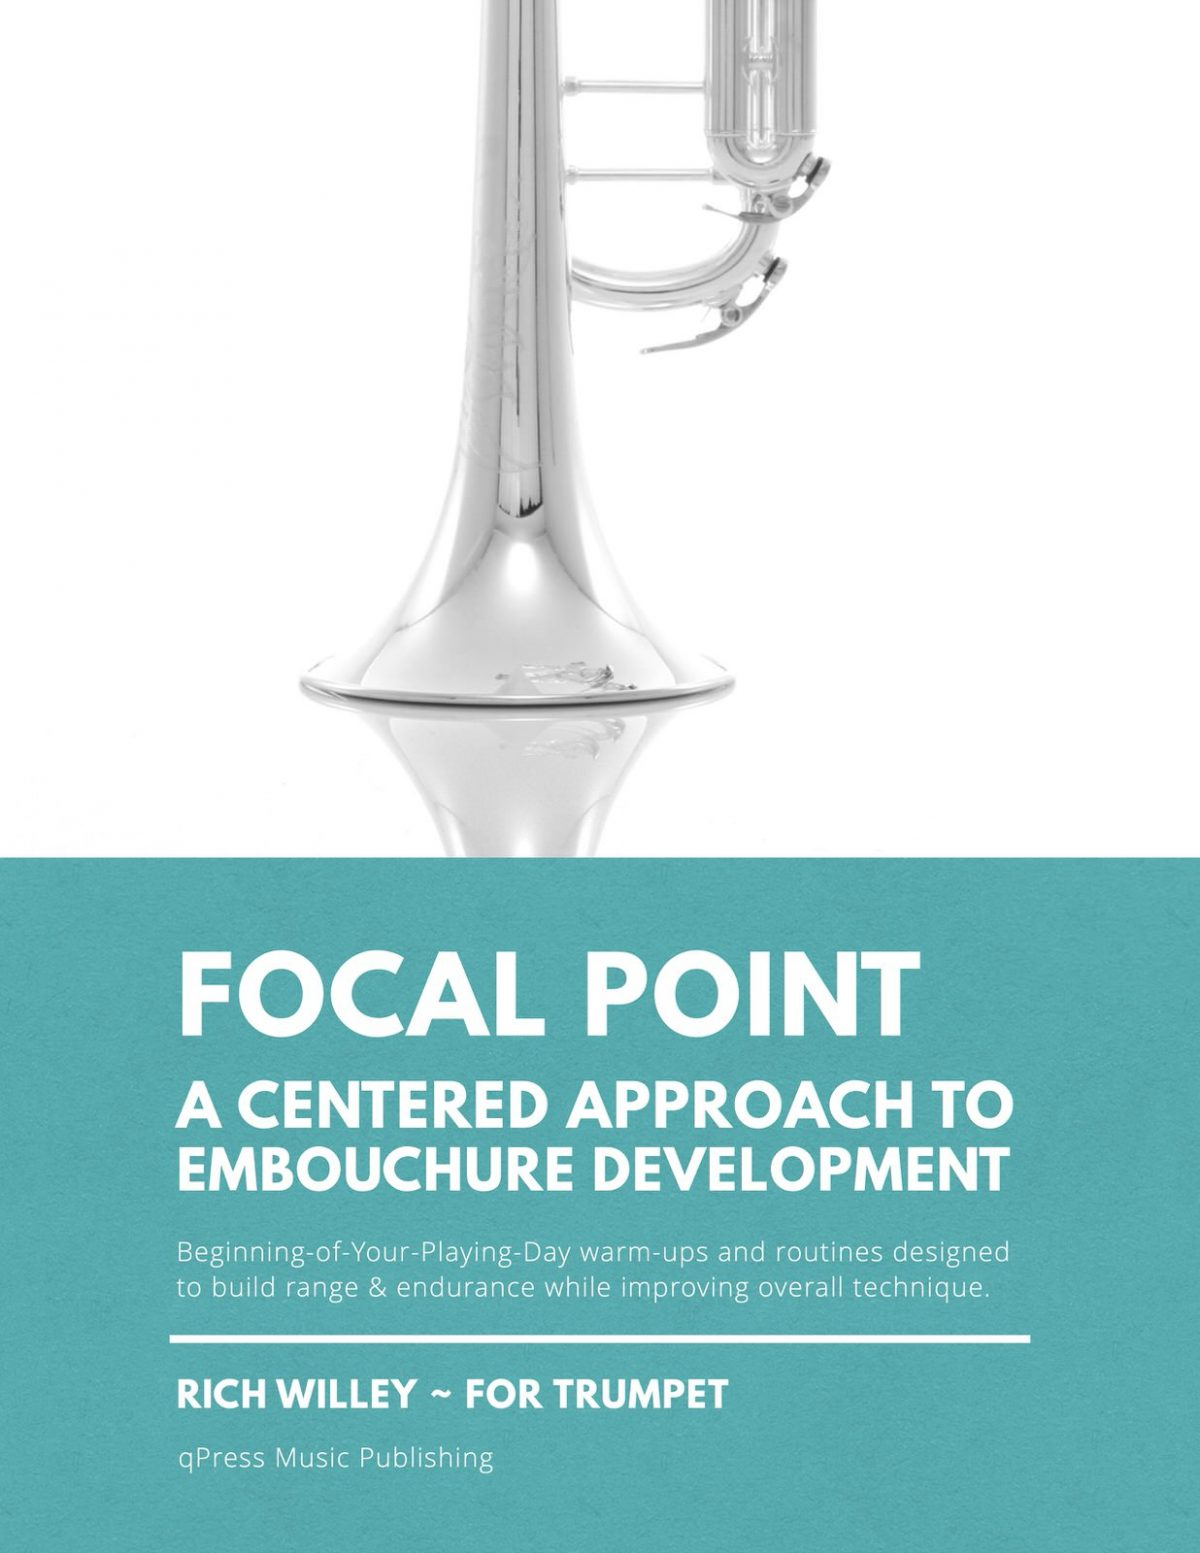 Willey, Focal Point — A Centered Approach To Embouchure Development for Trumpet-p01